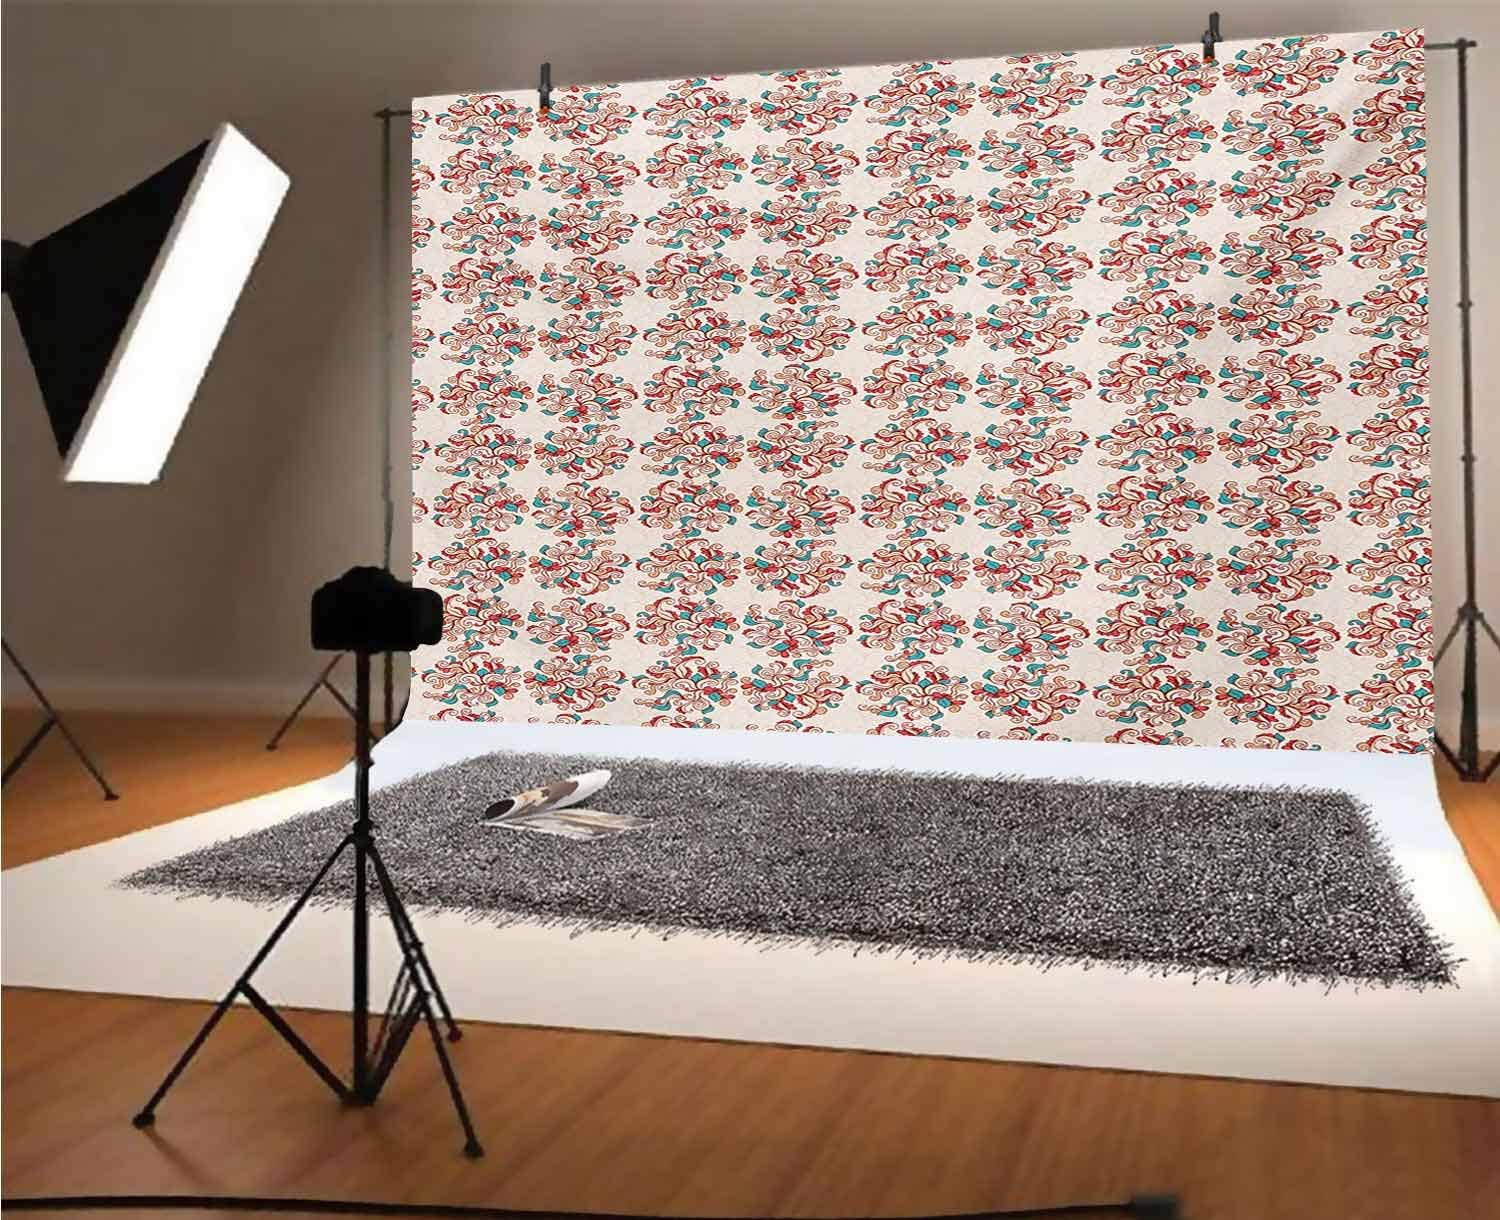 Coral 10x6.5 FT Vinyl Photography Background Backdrops,Double Exposured Graphic Mexican Skull Bones and Exotic Creepy Dead Icon with Plants Background for Graduation Prom Dance Decor Photo Booth Studi